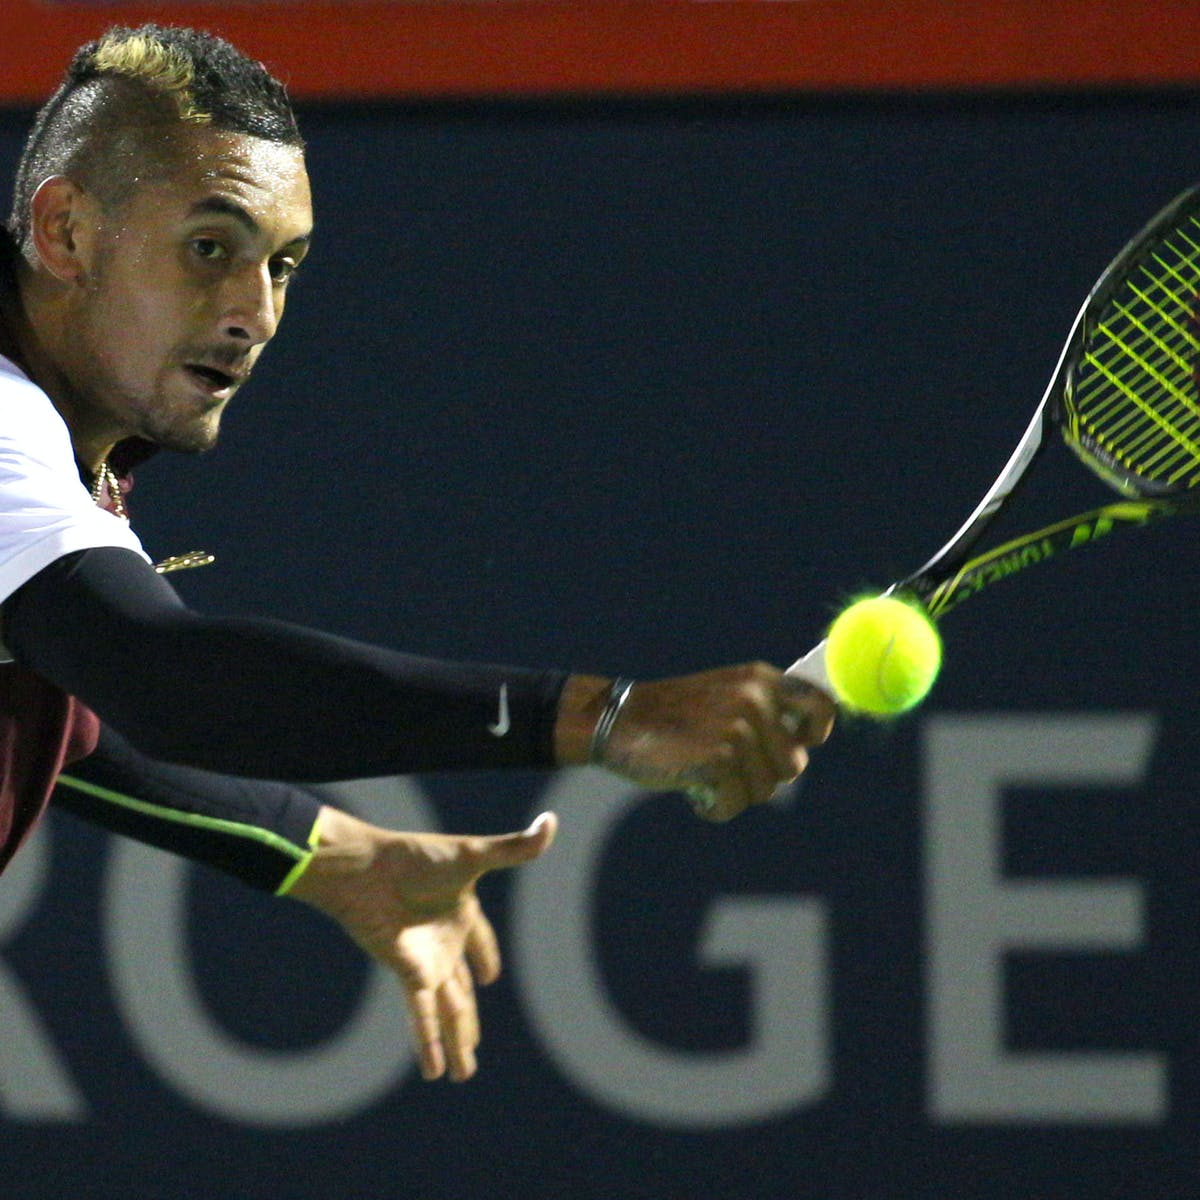 This is not about sledging: Kyrgios comments reveal the rampant misogyny  that dominates men's sport